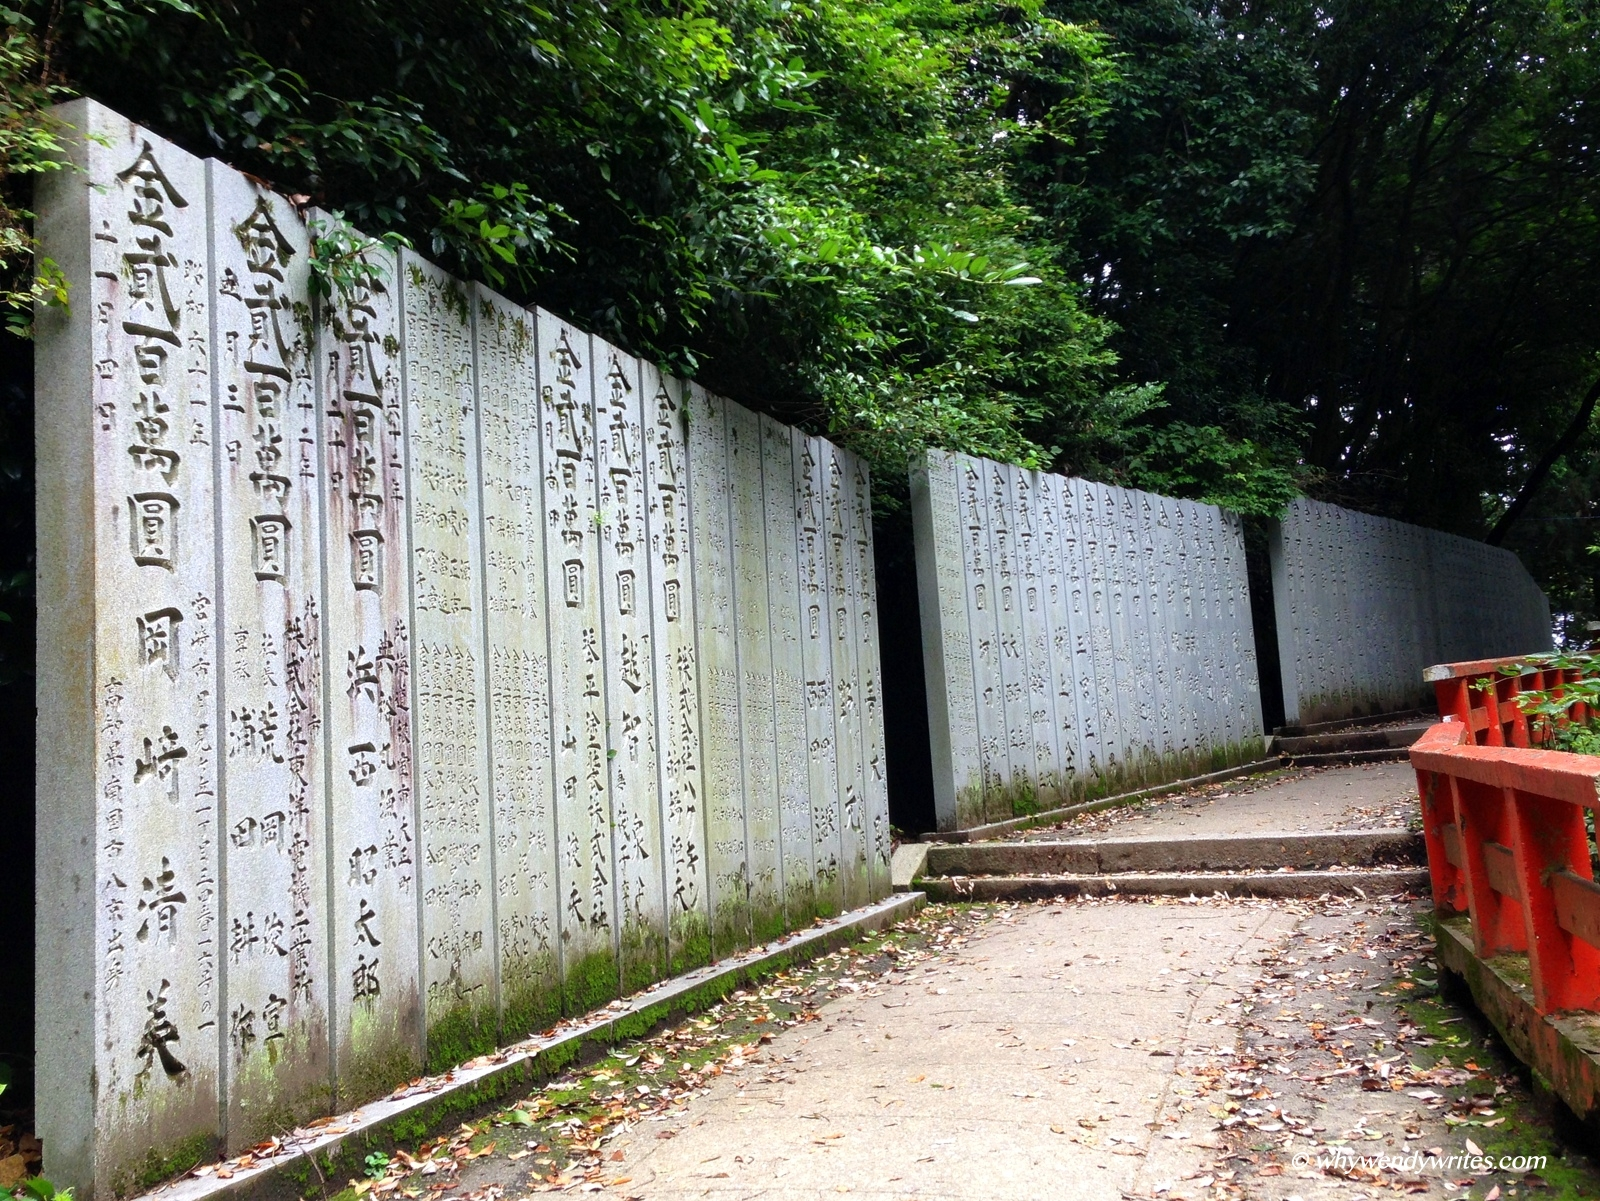 Stone tablets along the atmospheric trail